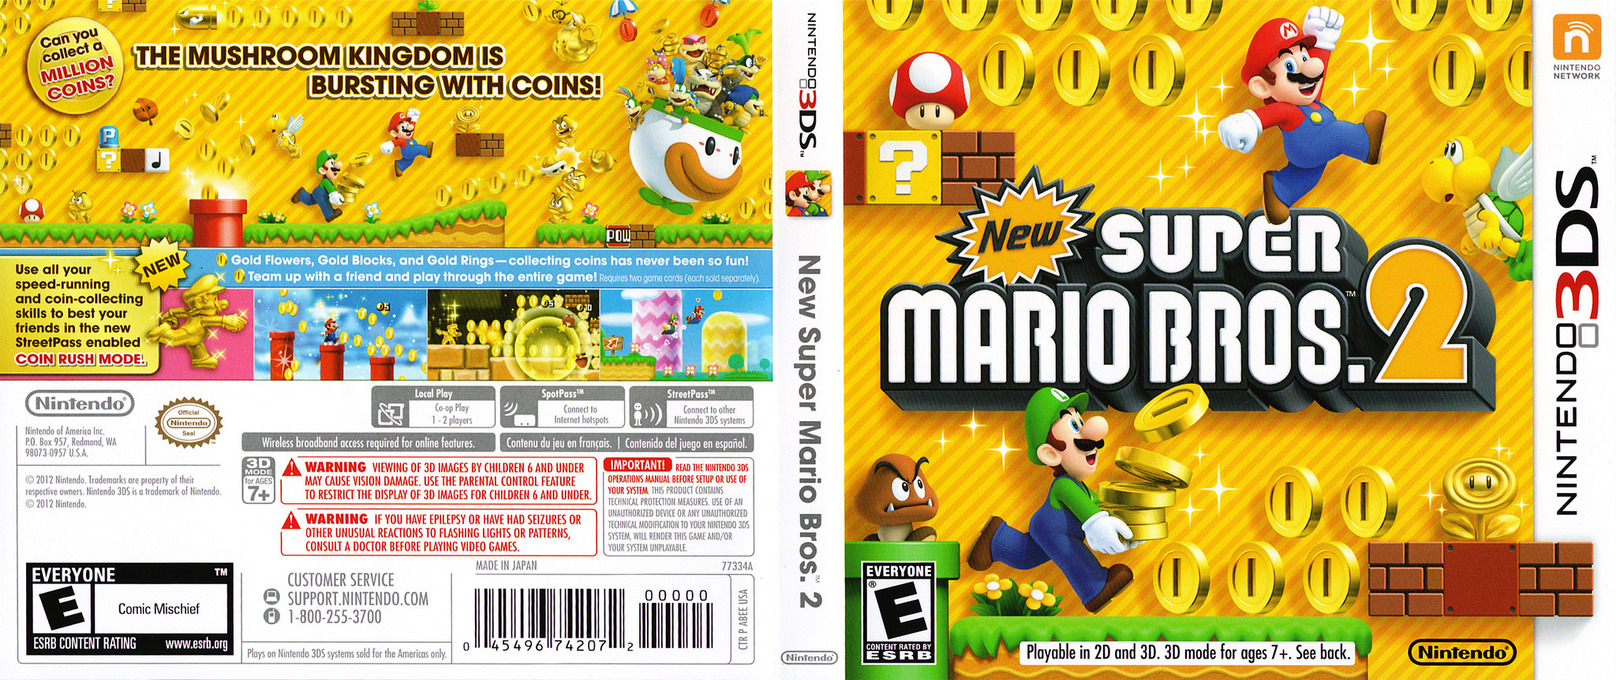 New Super Mario Bros. 2 3DS coverfullHQ (ABEE)